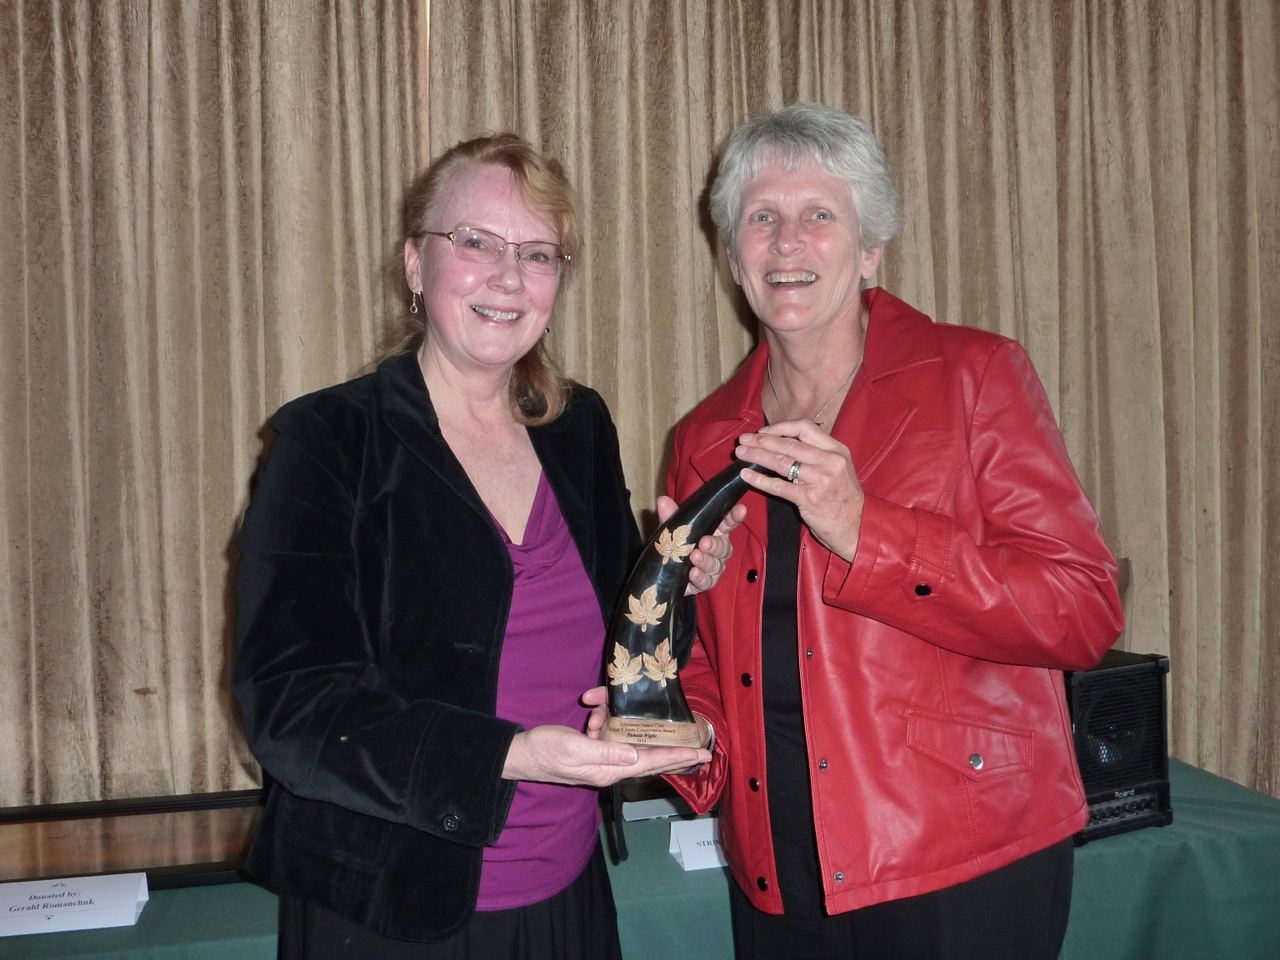 Pam Wight and Marg Reine with the Edgar T. Jones Award for Conservation